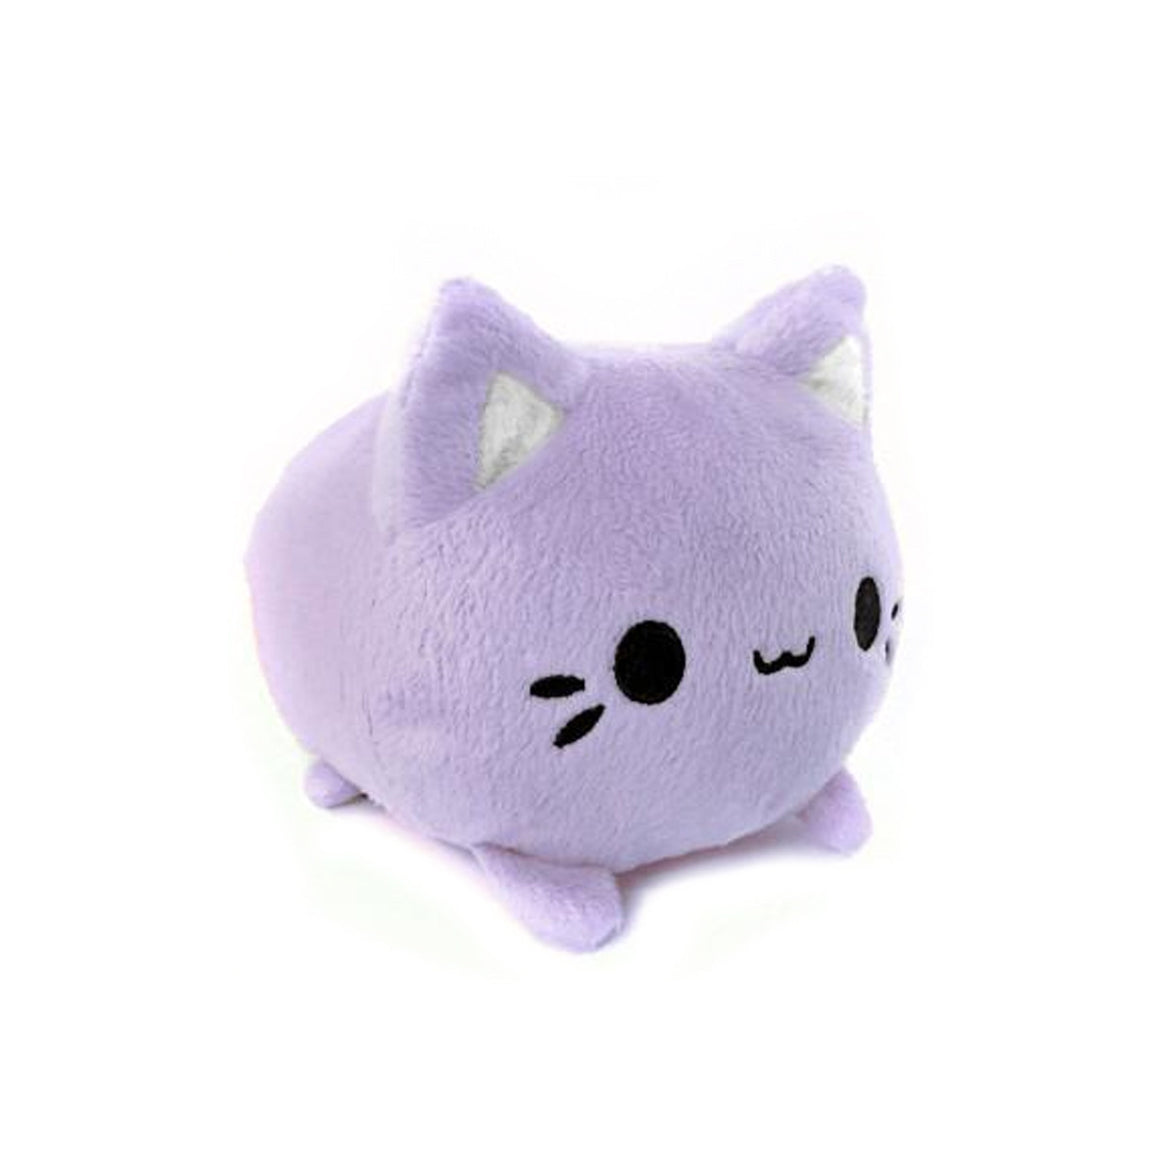 Meowchi Taro Plush  by Tasty Peach Studios